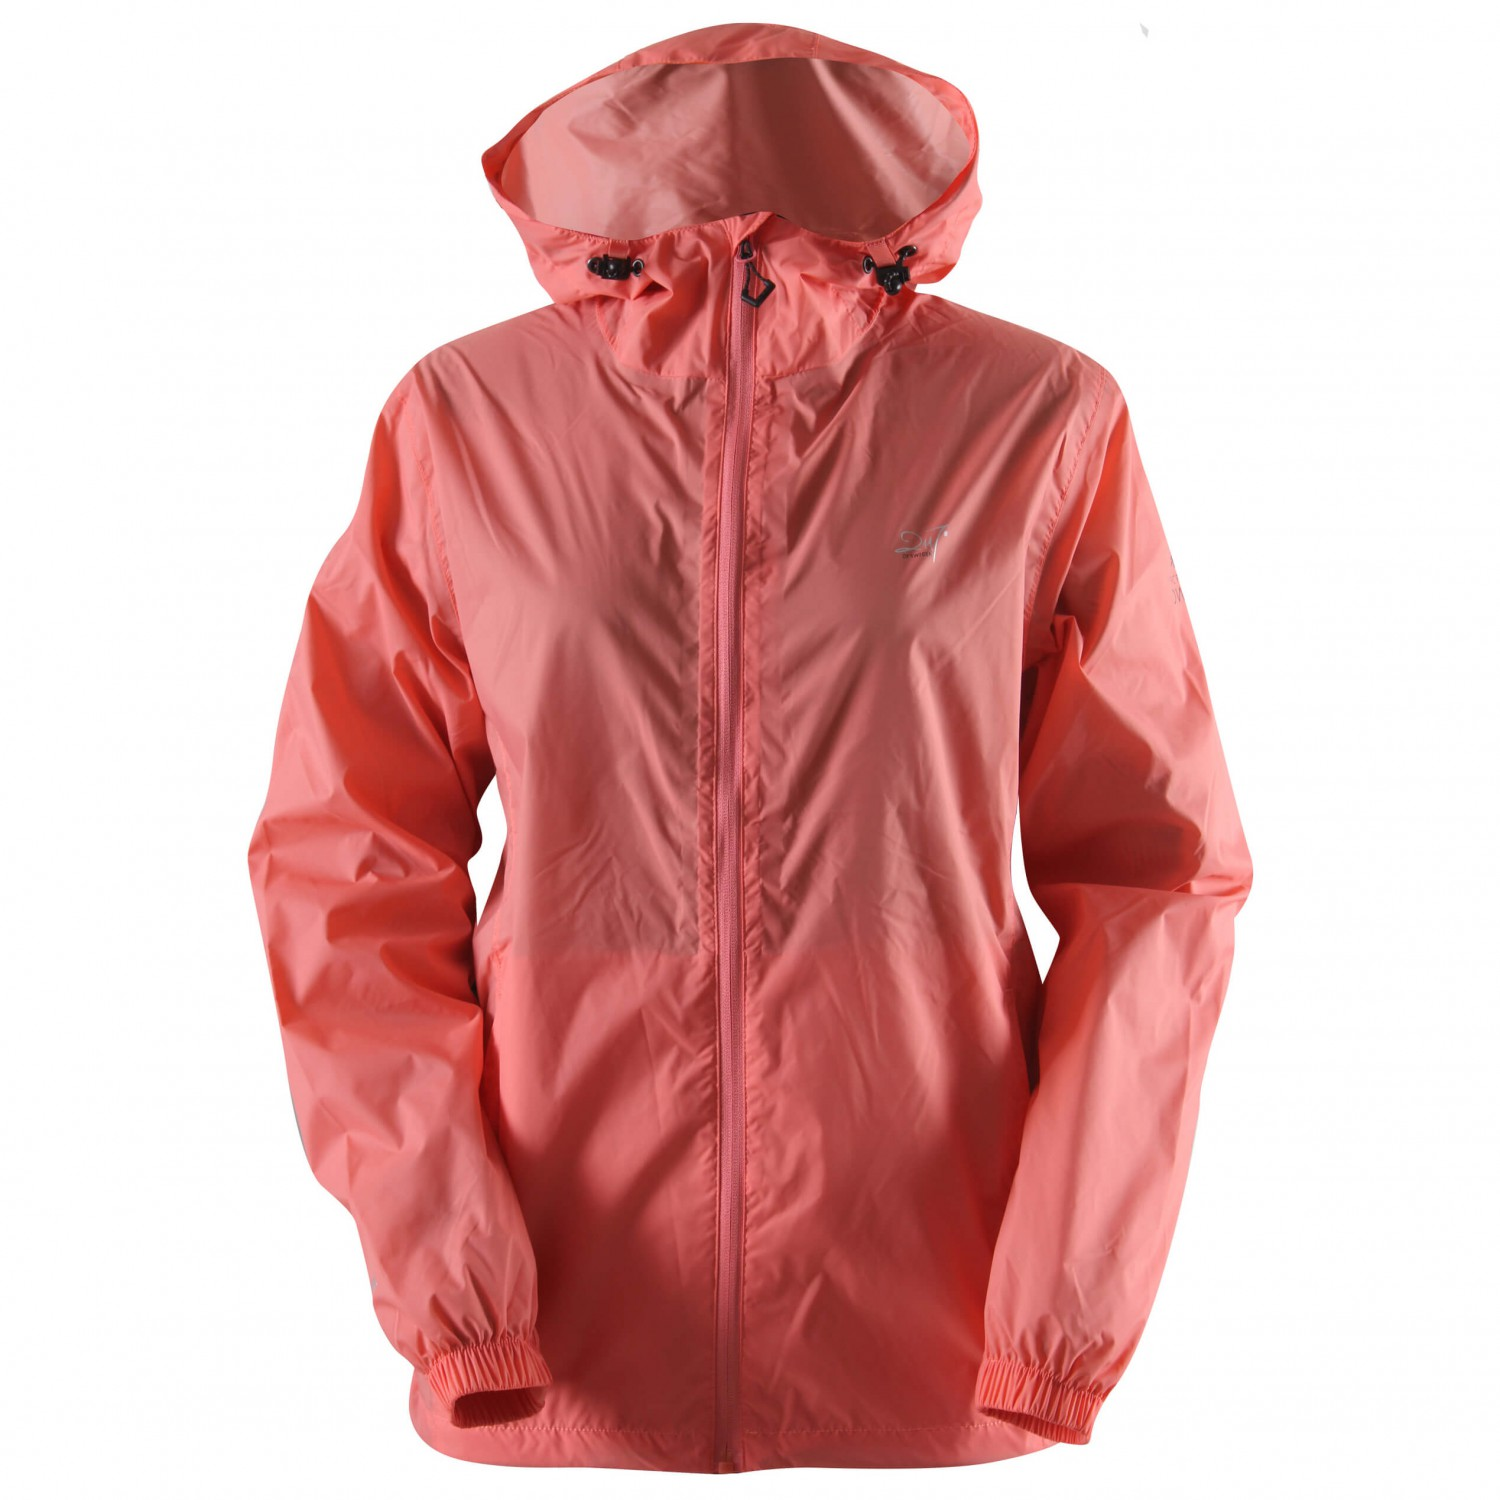 2117 of Sweden Women's Vedum Jacket Regenjacke Pink Blush | 34 (EU)